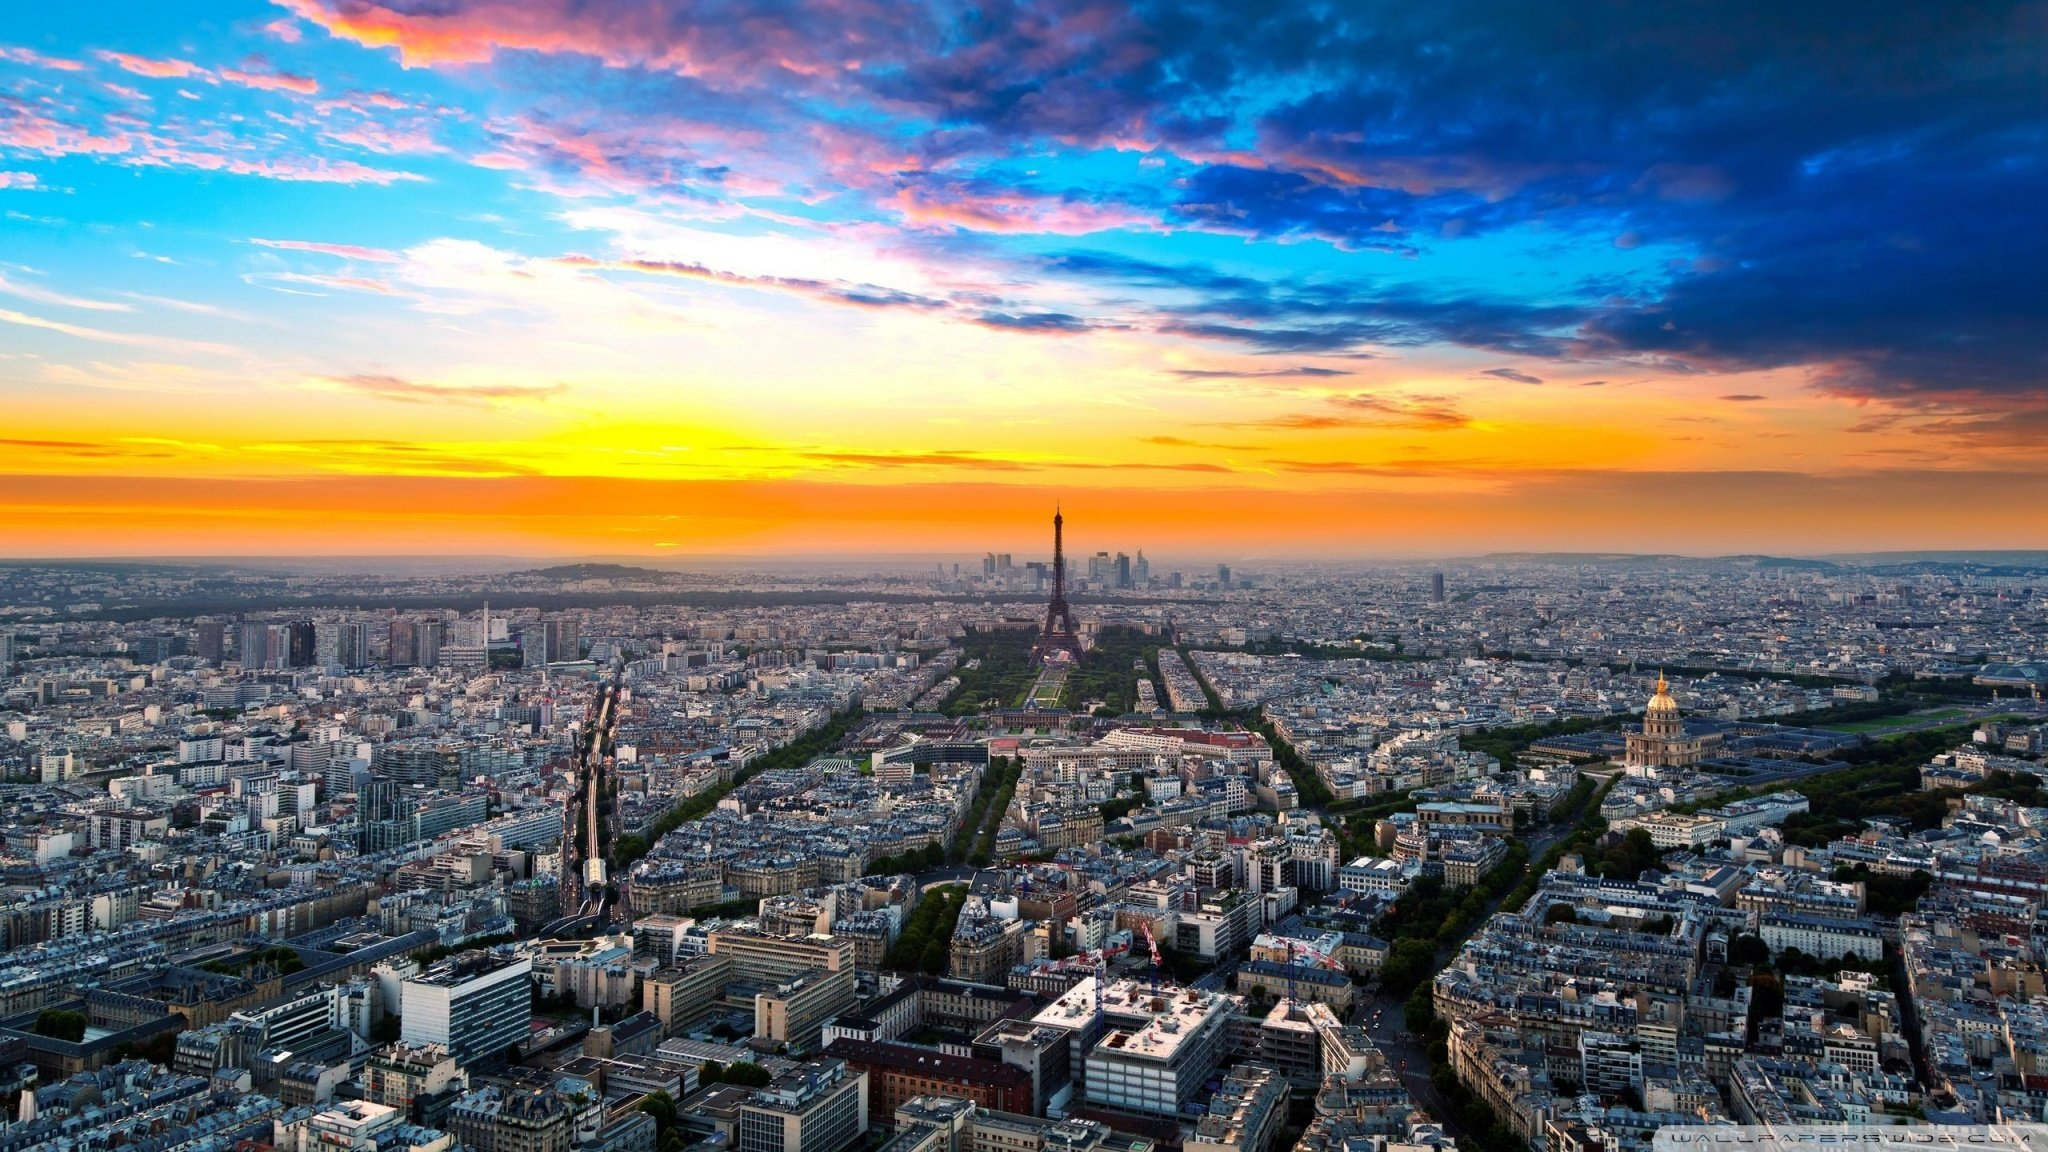 Free Paris high quality wallpaper ID:477266 for hd 2048x1152 desktop